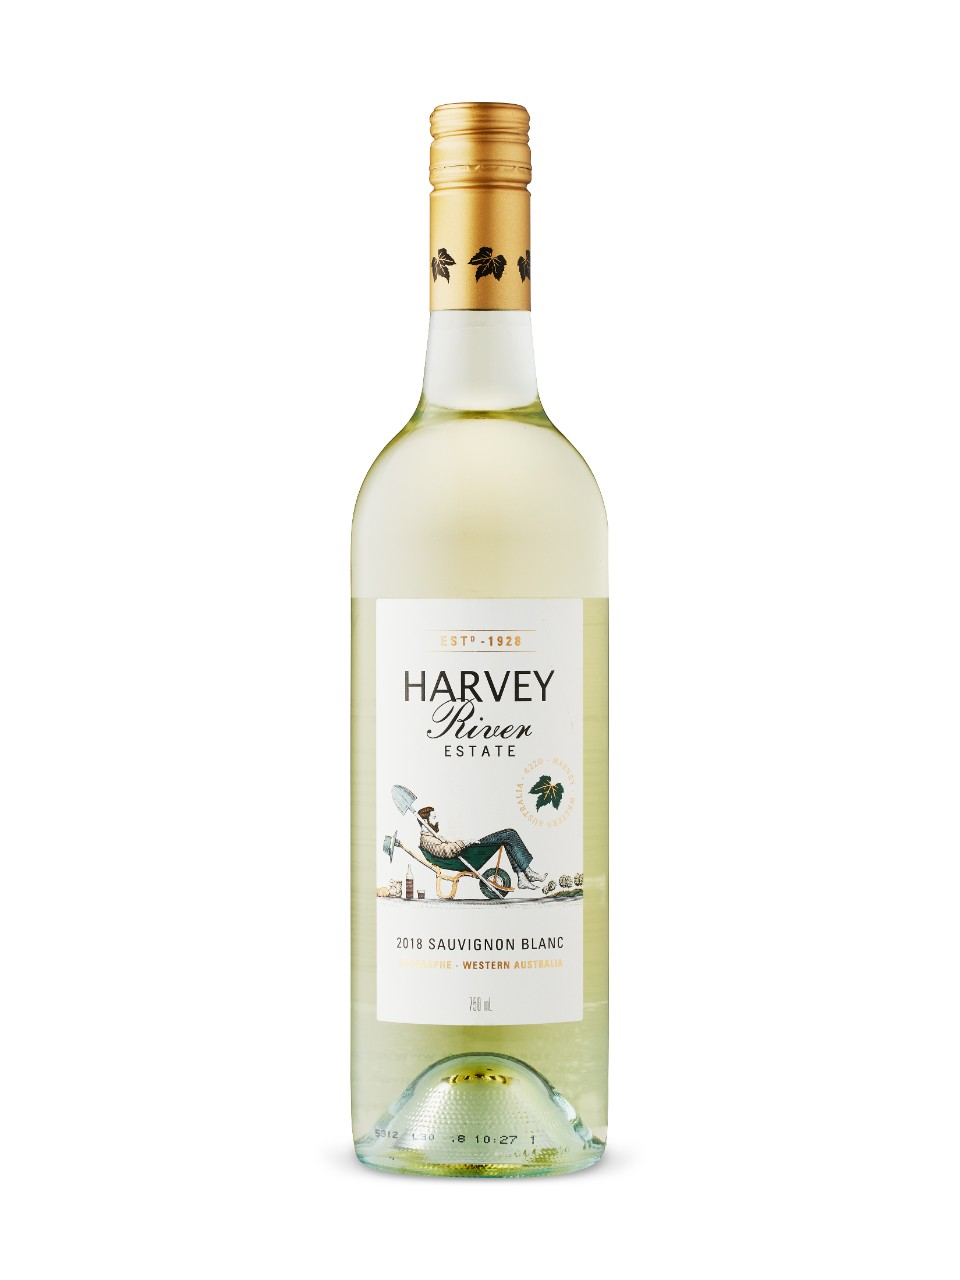 Harvey River Estate Sauvignon Blanc 2018 from LCBO